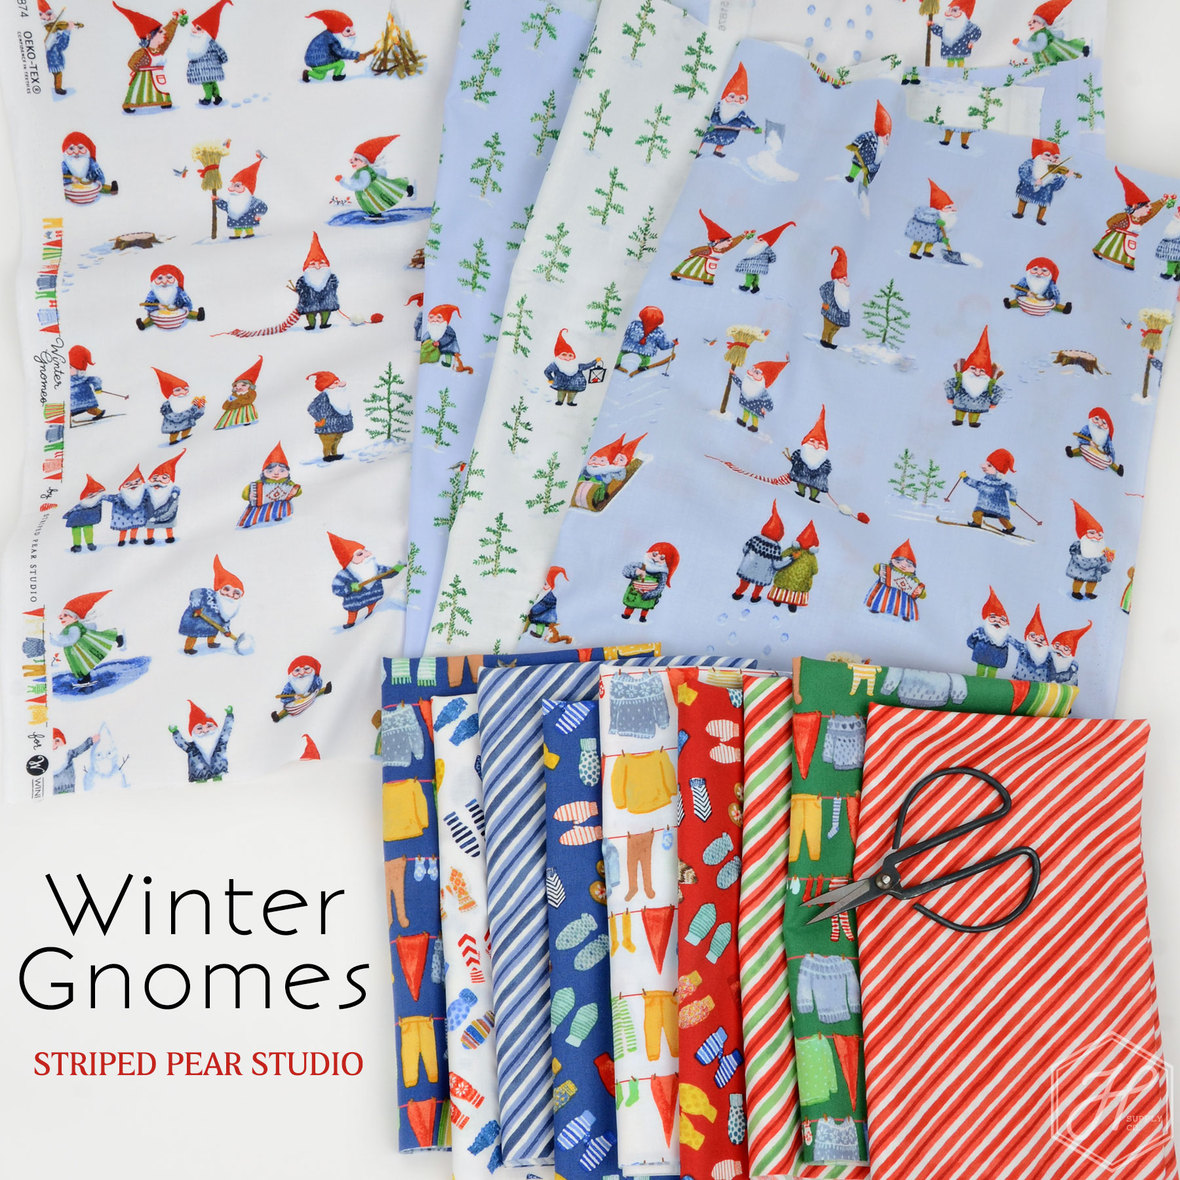 Winter-Gnomes-Fabric-Striped-Pear-Studio-for-Windham-at-Hawthorne-Supply-Co